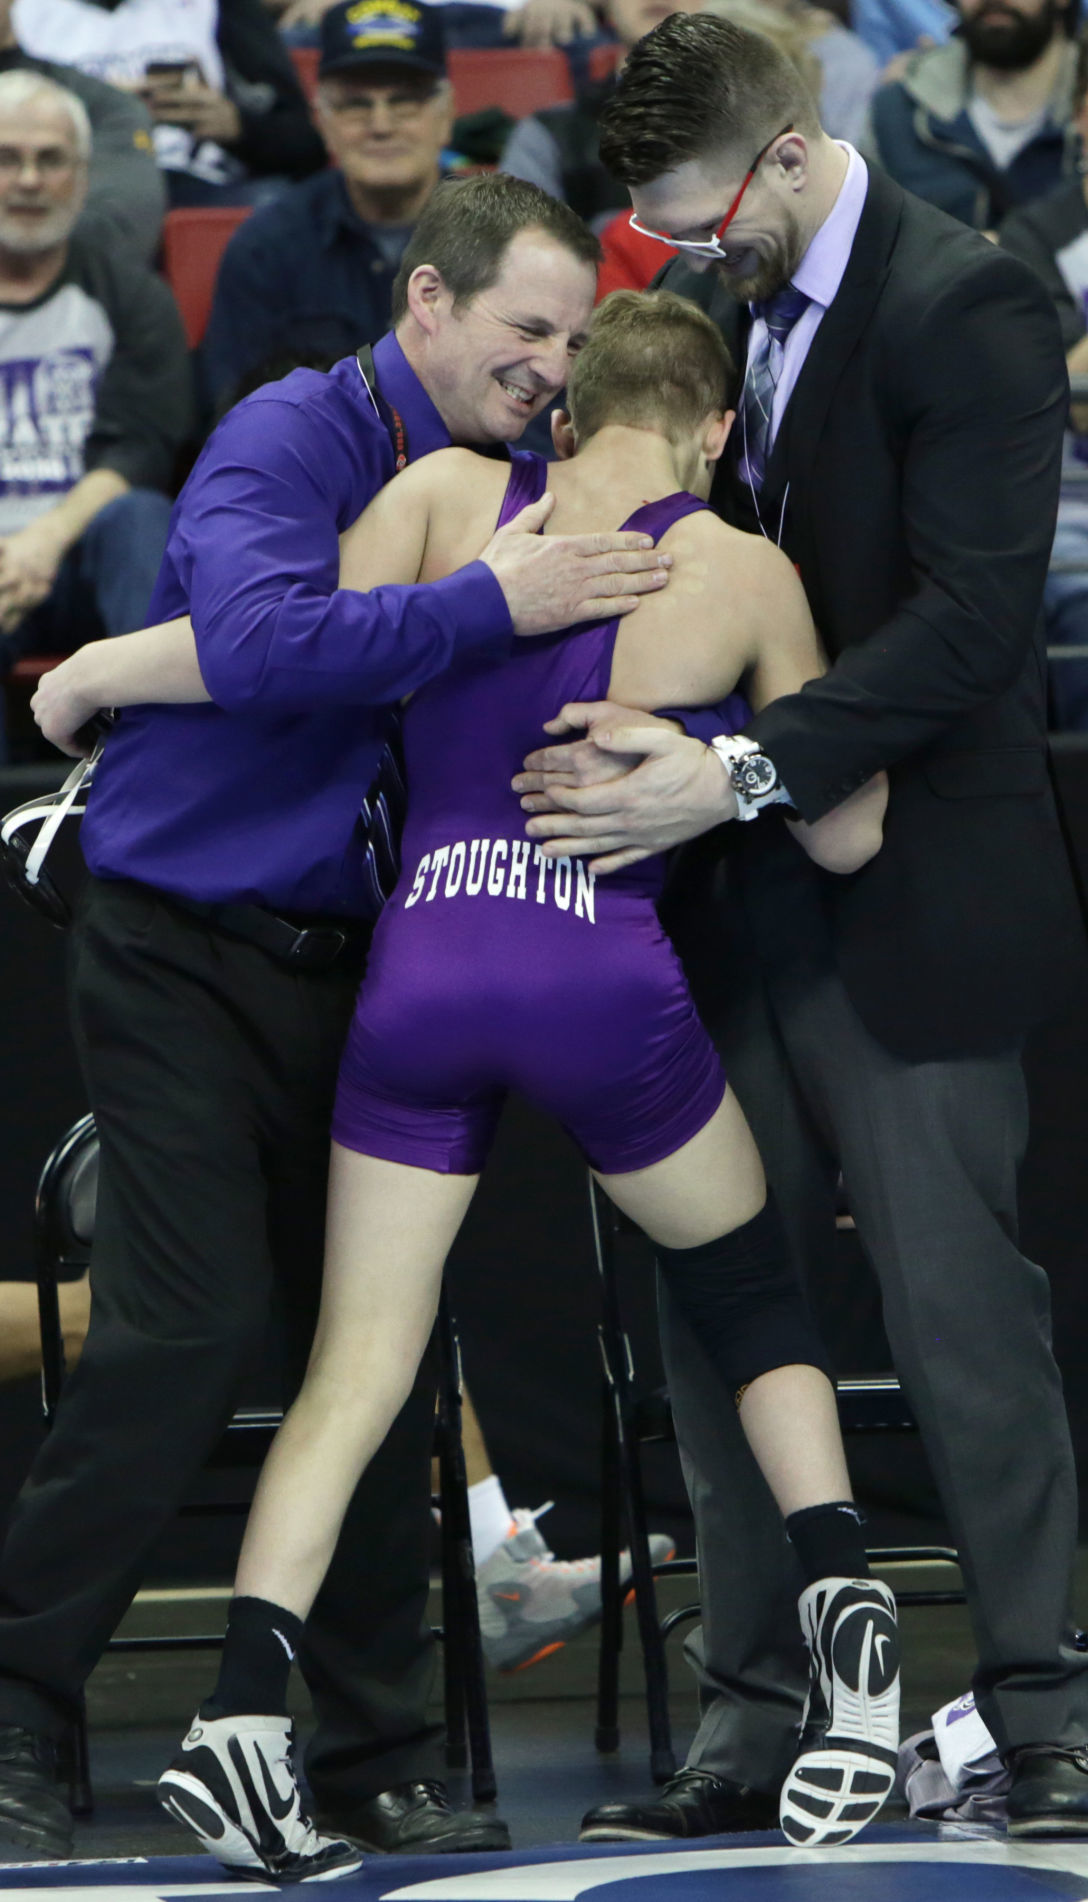 Stoughton's Hunter Lewis celebrates his WIAA Division 1 individual state wrestling championship